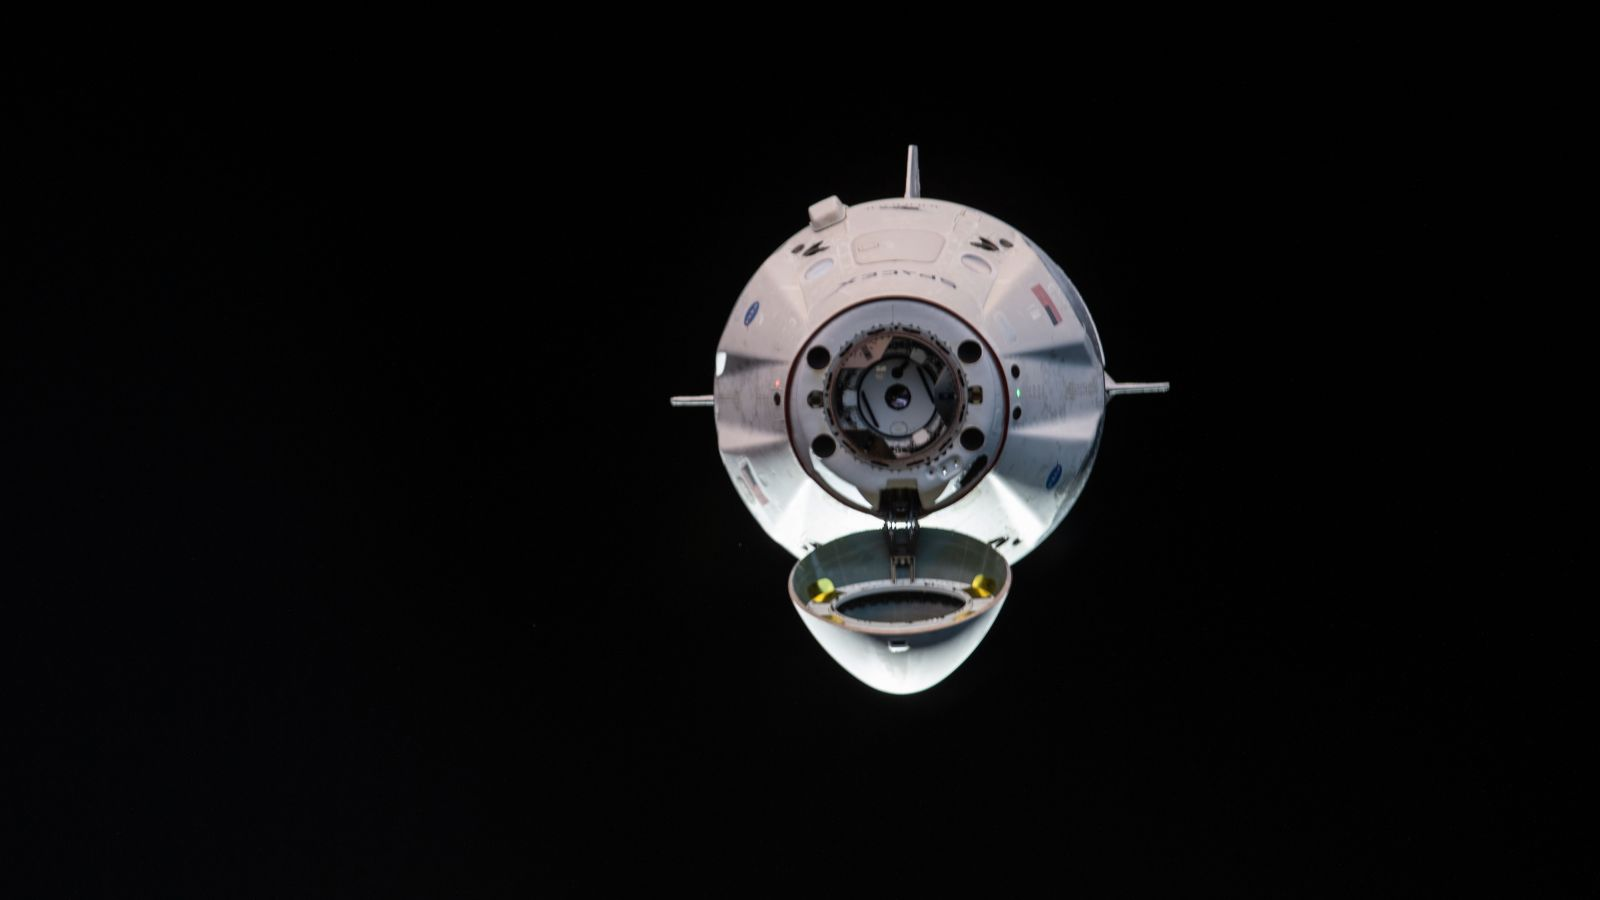 Crew Dragon as it approached the ISS on March 3, 2019. Five days later, it departed the space station to begin its journey home. Photo Credit: NASA